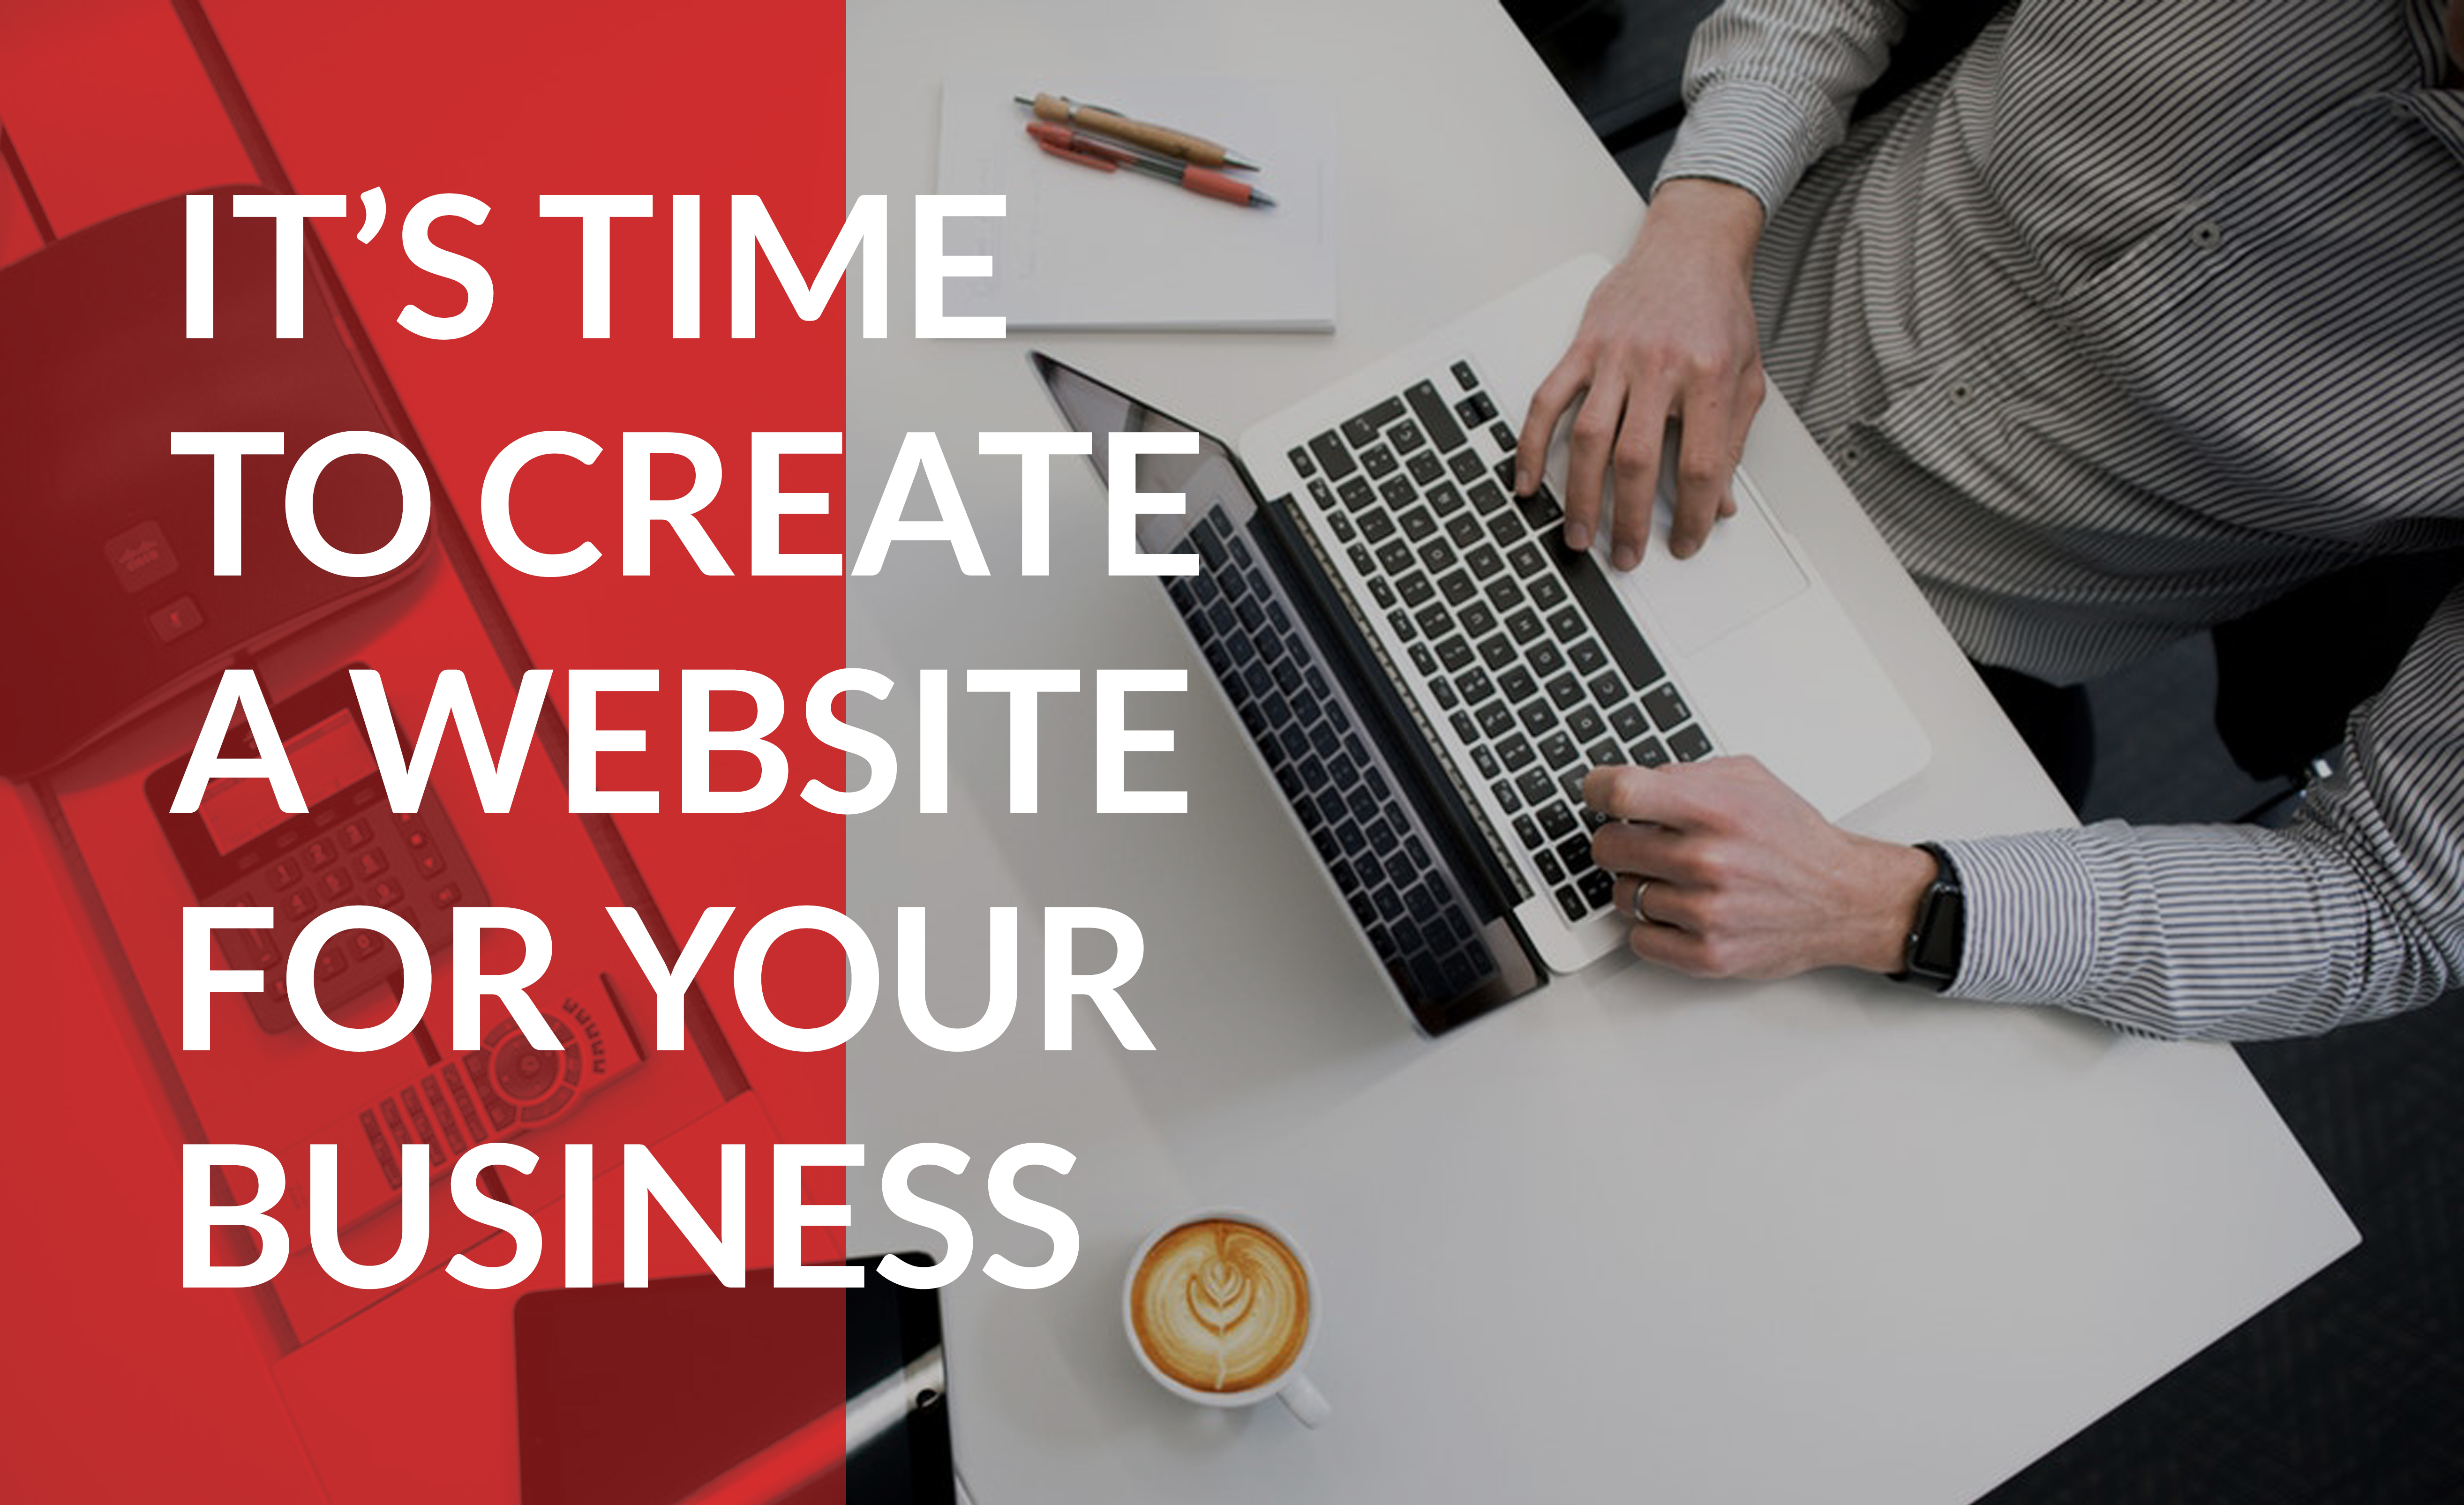 Use tools like WordPress and Domain.com to get your business online today.